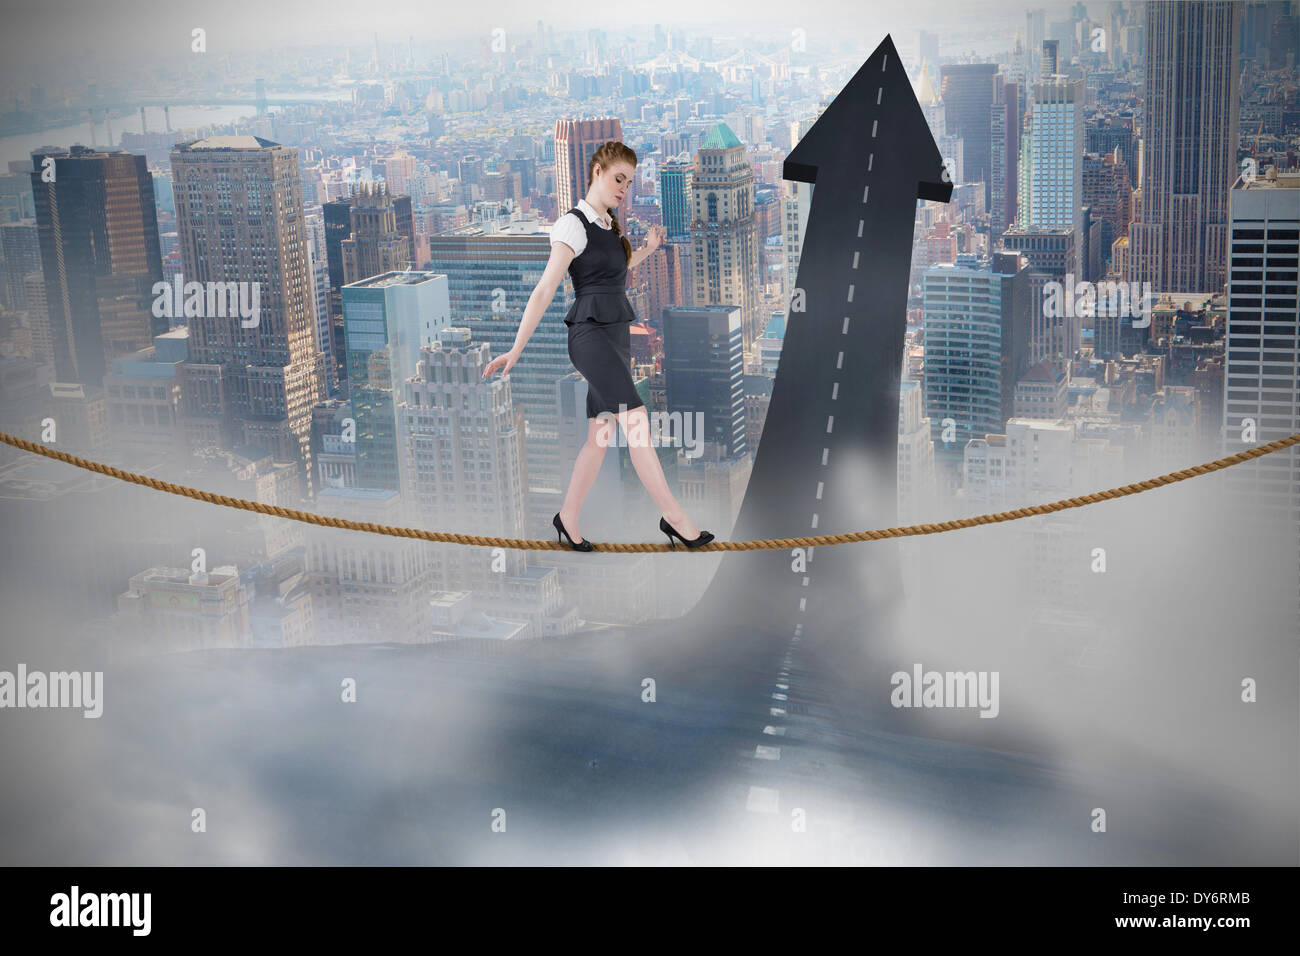 Composite image of businesswoman doing a balancing act - Stock Image